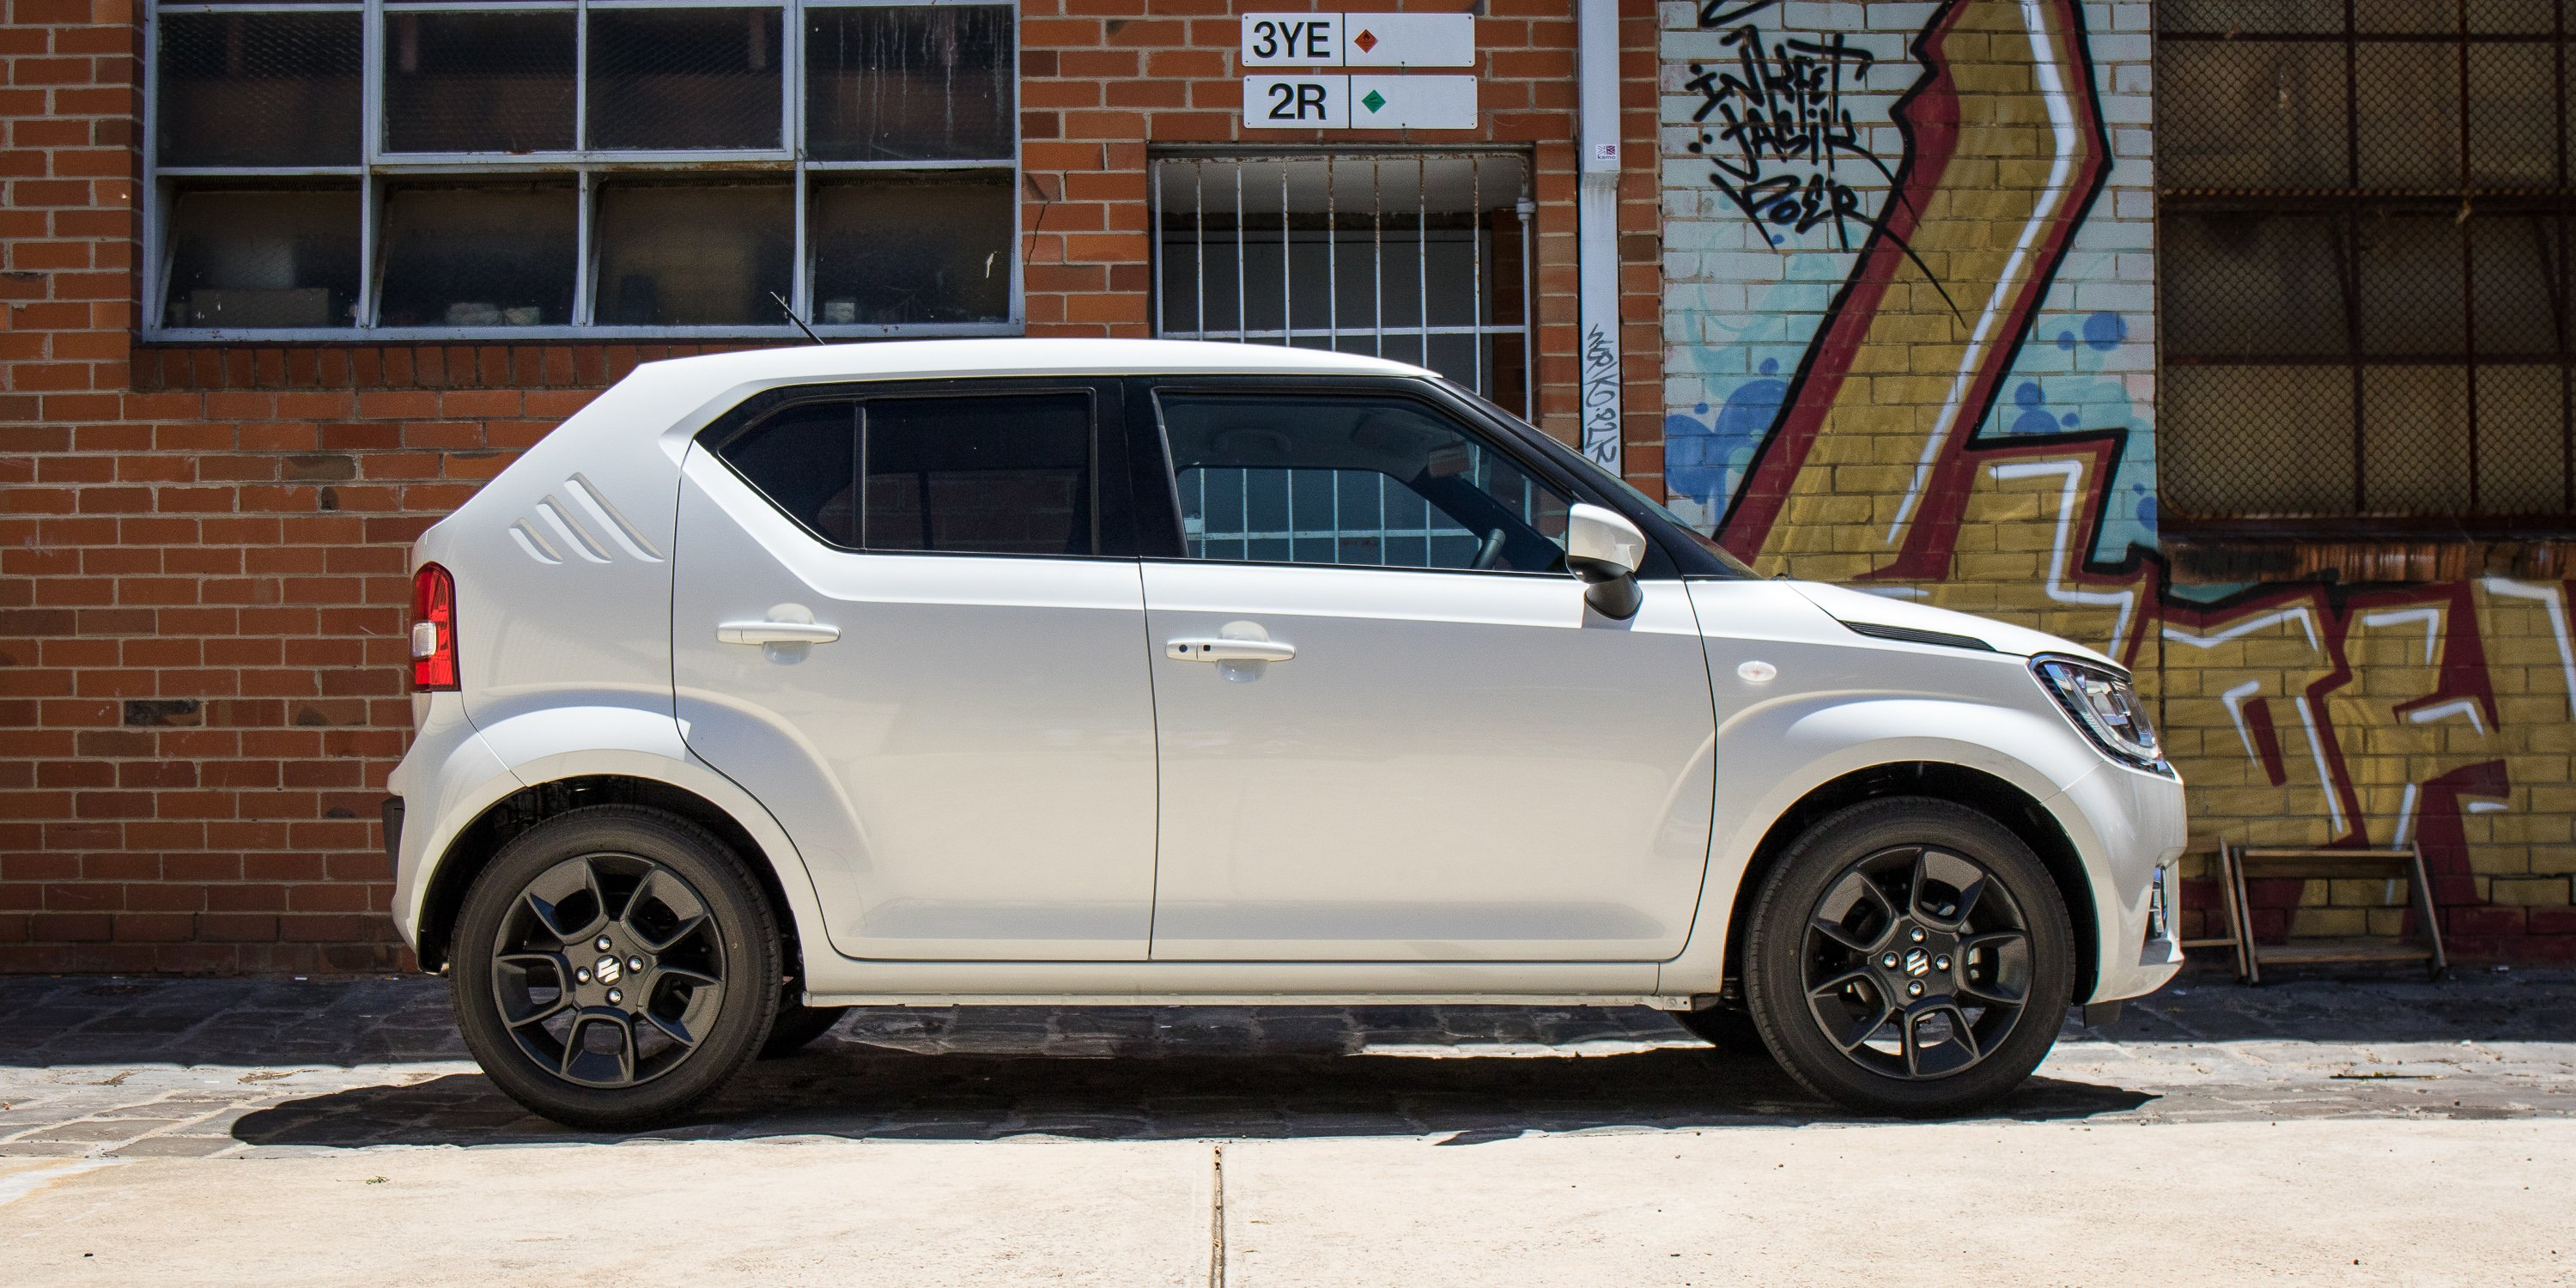 suzuki ignis youtube review with Photos on Photos as well Photos in addition Photos together with Photos moreover Photos.